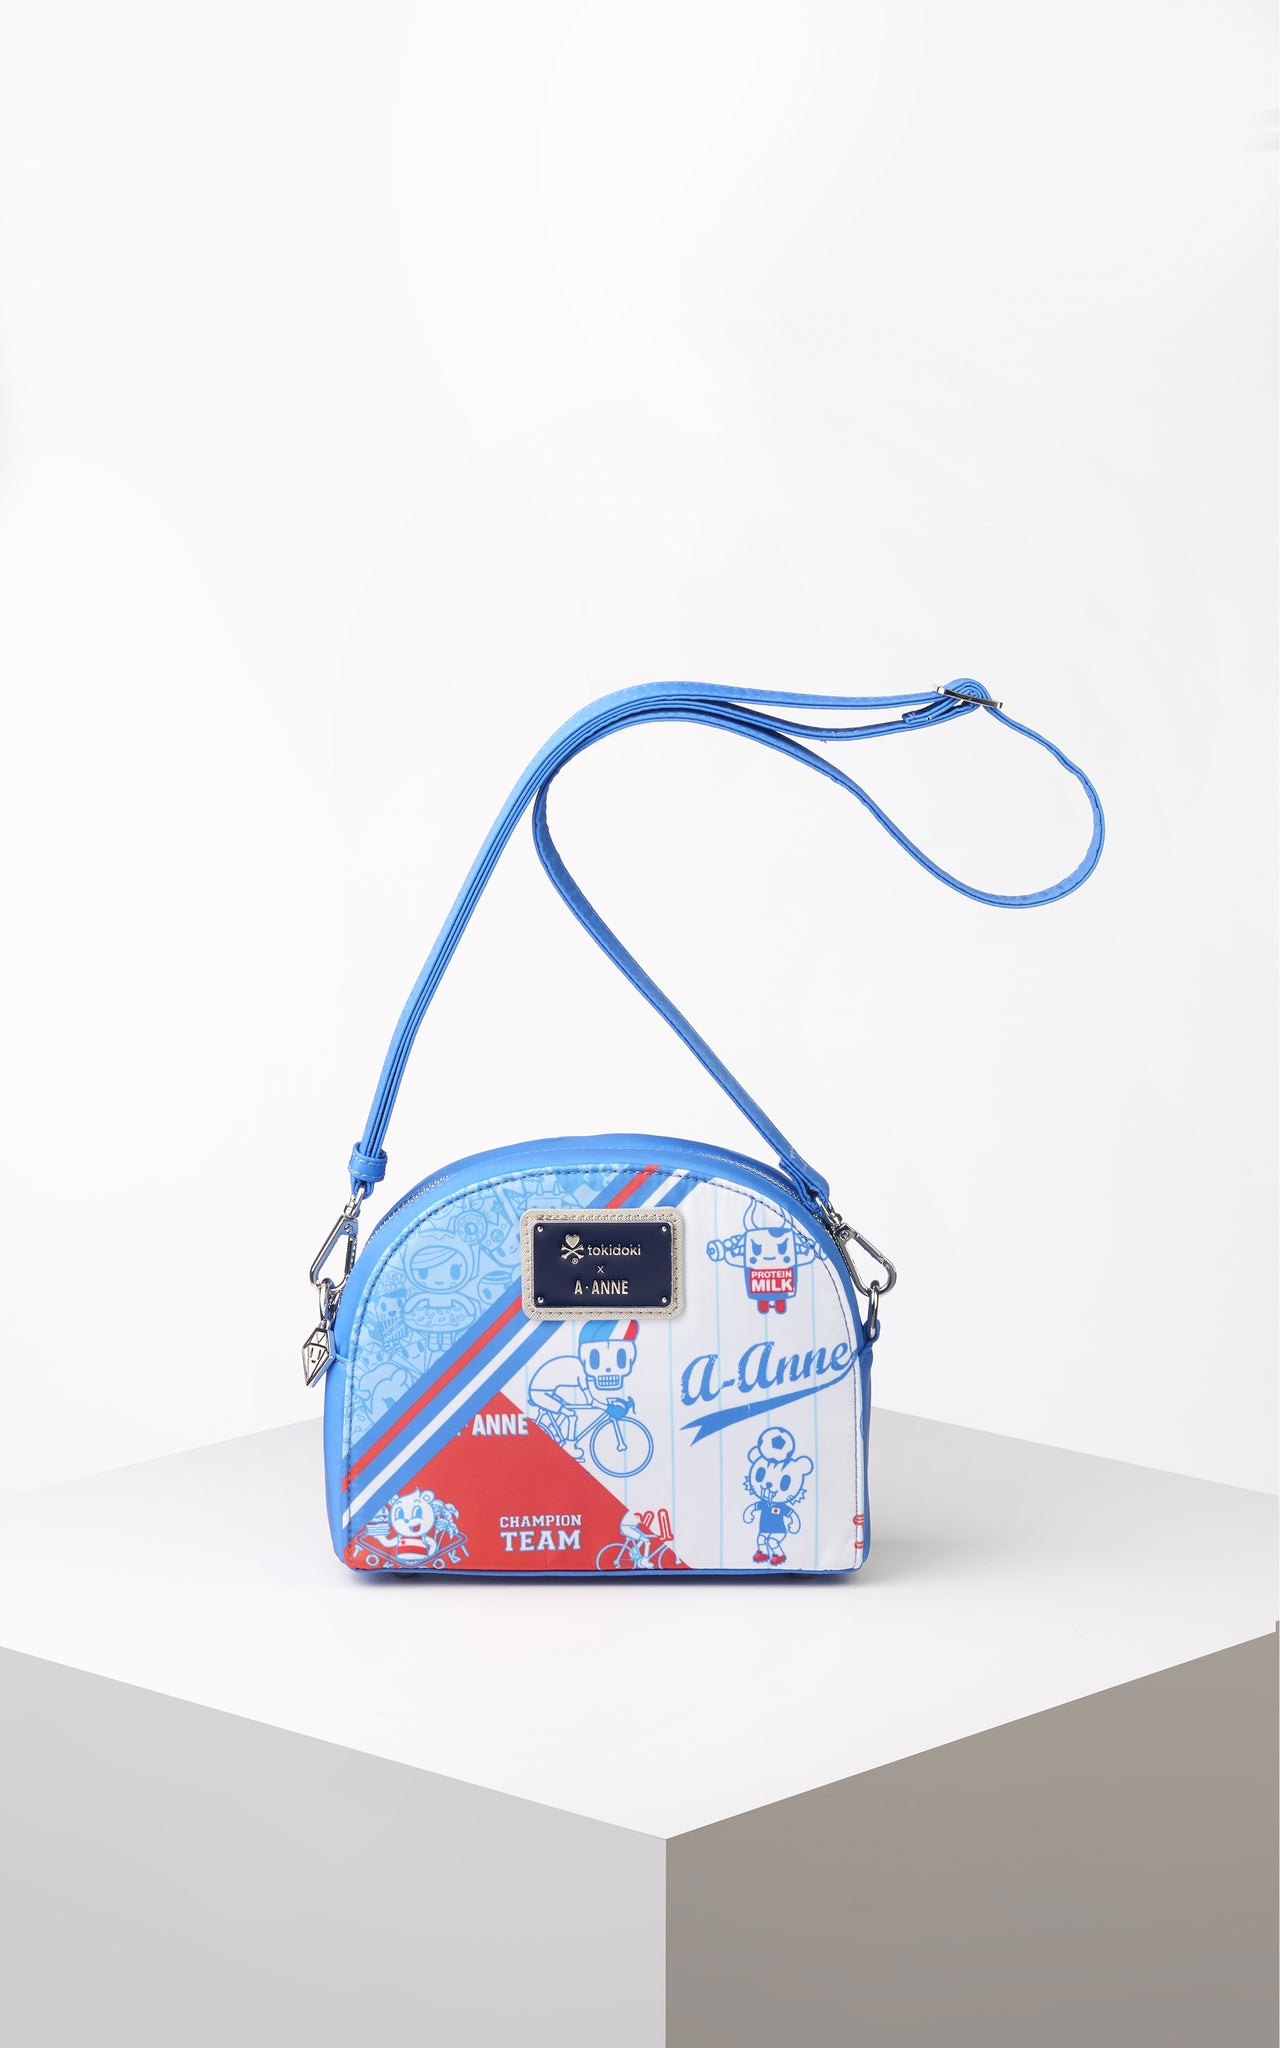 TDxAN Tokidoki Champion Crossbody Bag - A.Anne, Tokidoki, Ashlyn Anne, Fashion, Handbags, School, Bag, Accessories